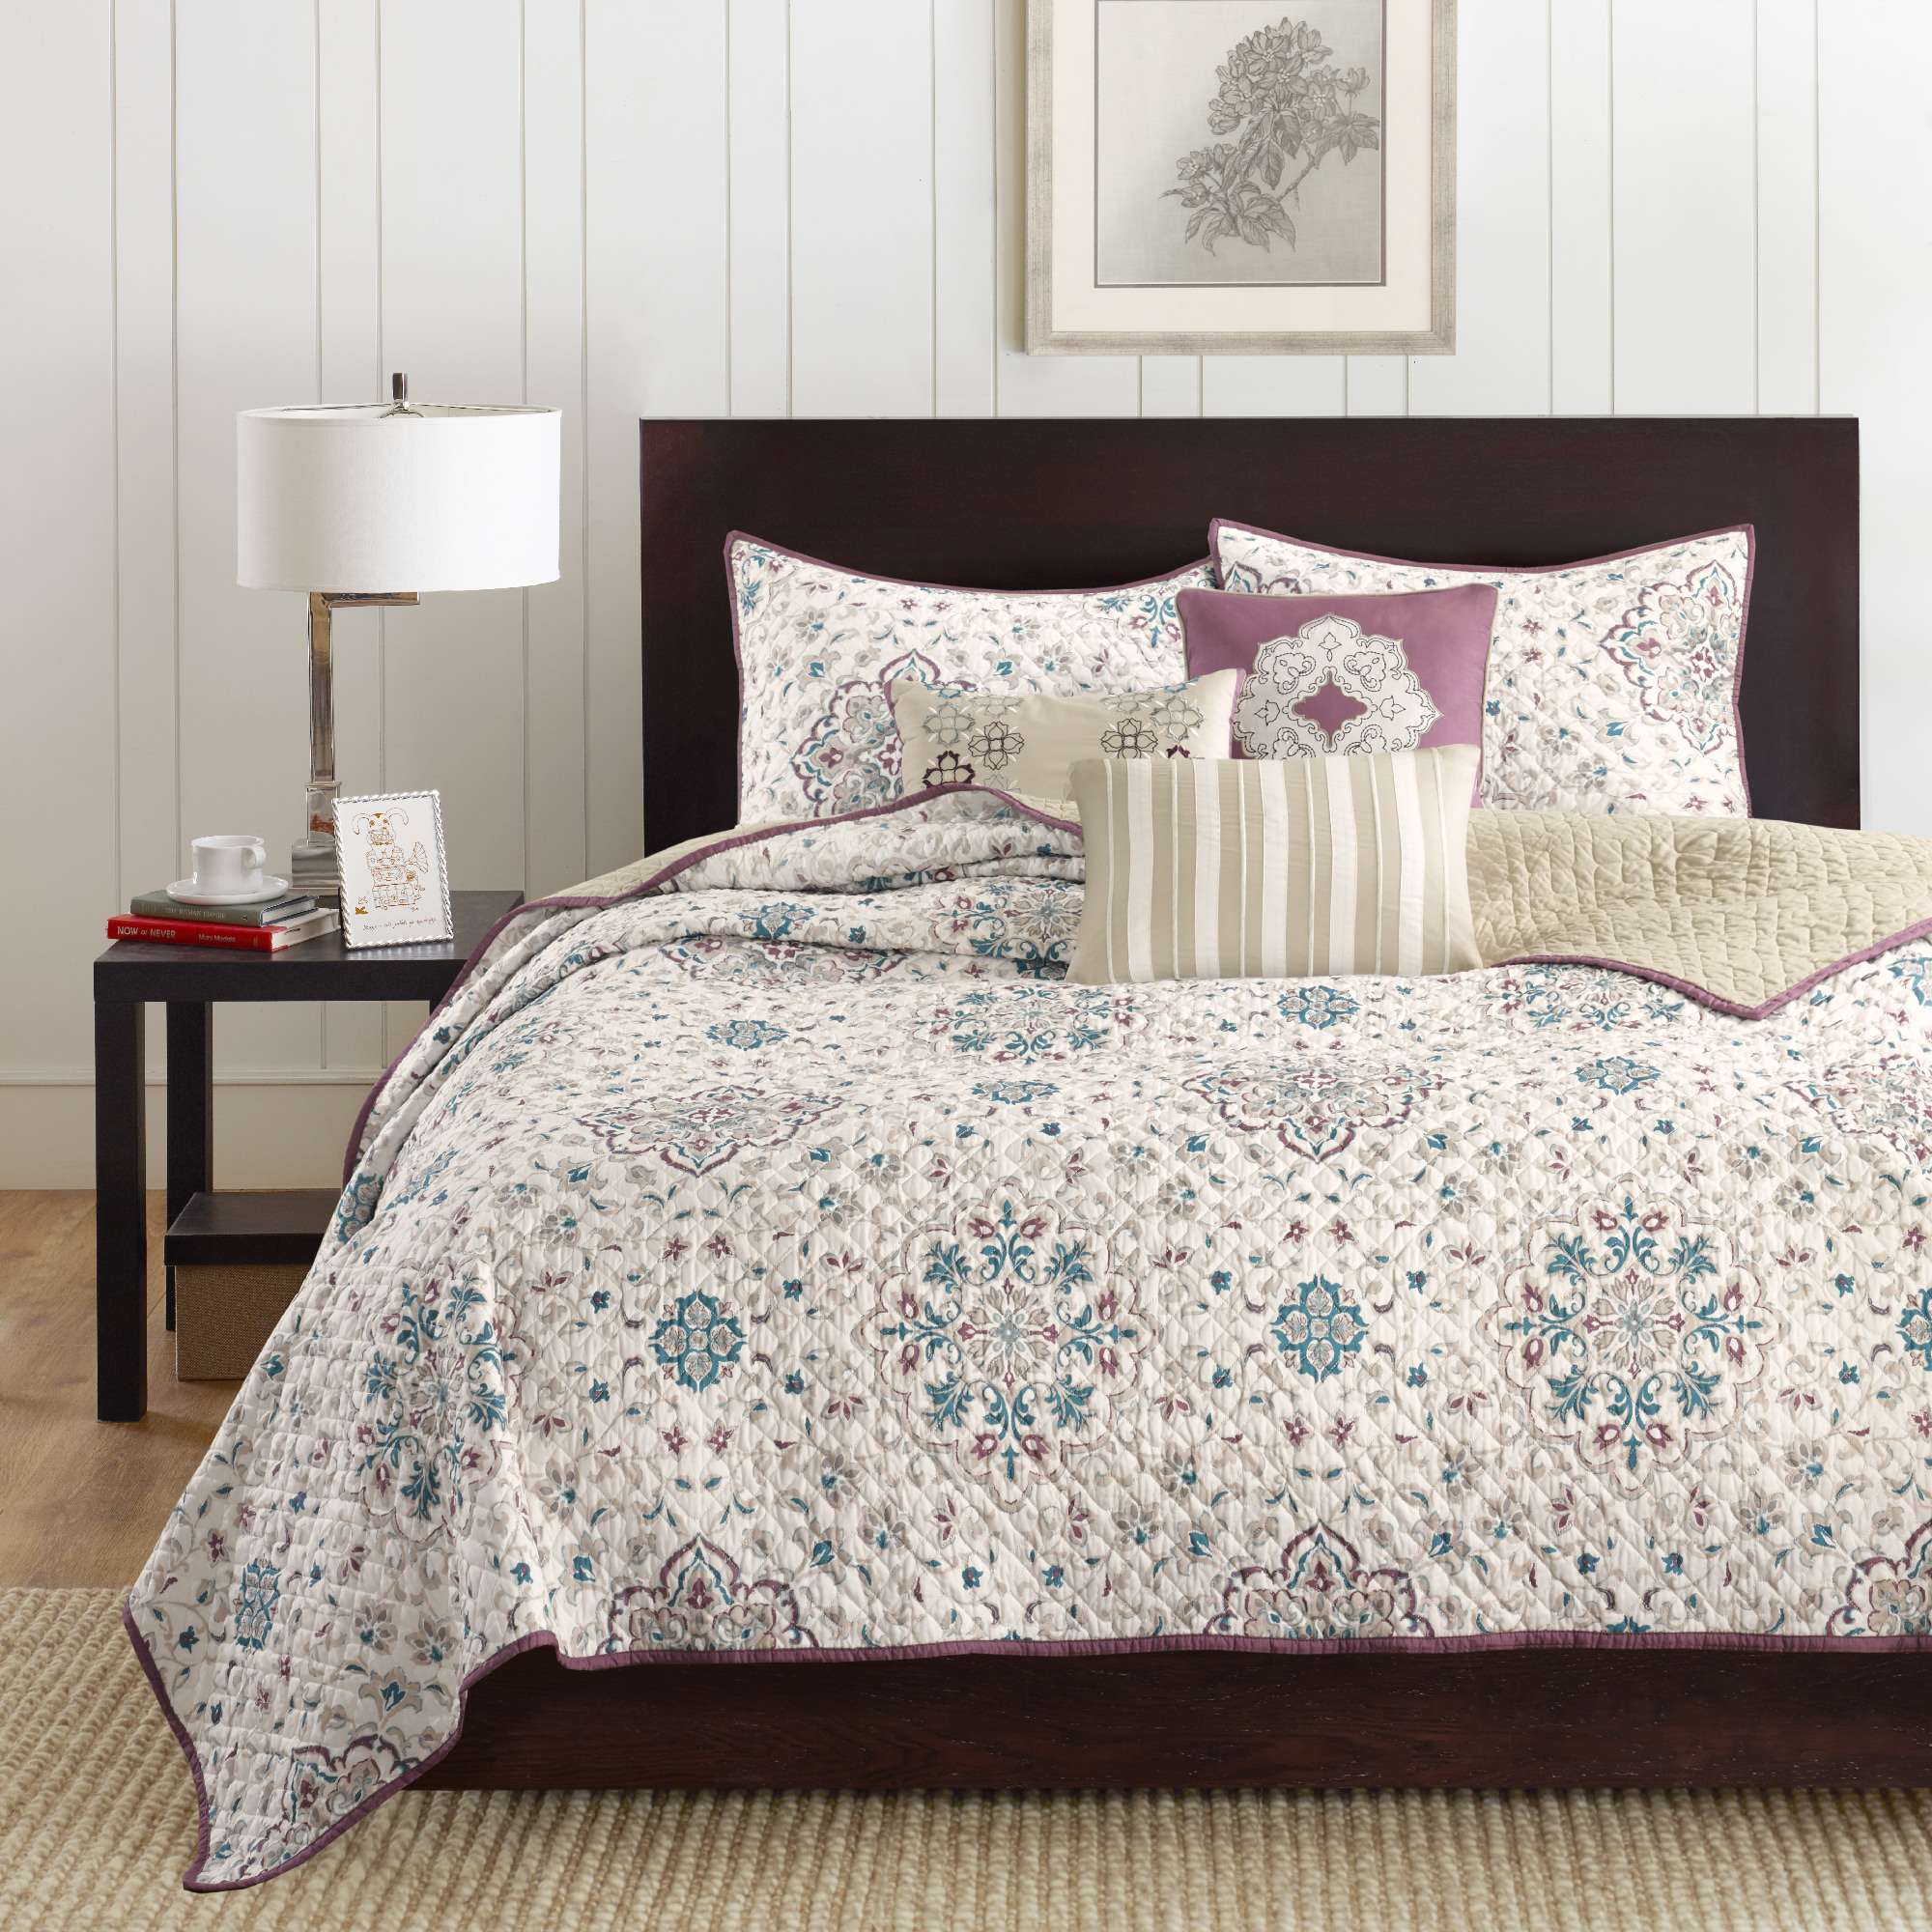 Home Essence Neda 6 Piece Quilted Coverlet Bedding Set by E & E co. Ltd